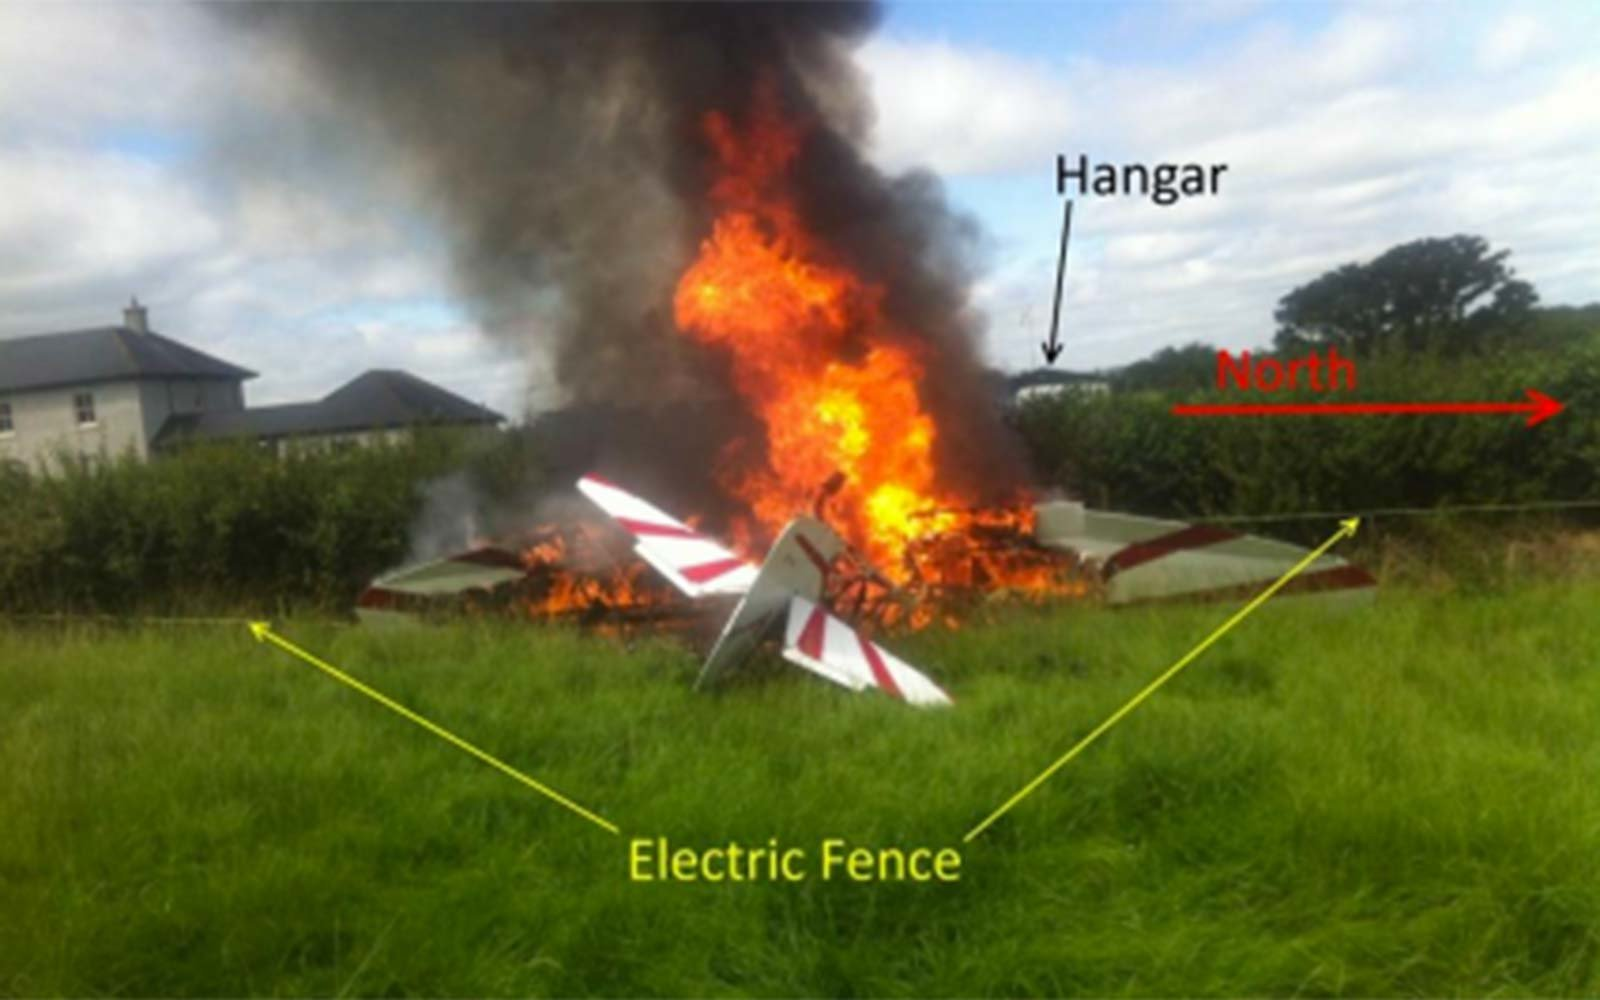 Ireland airplane takeoff accident